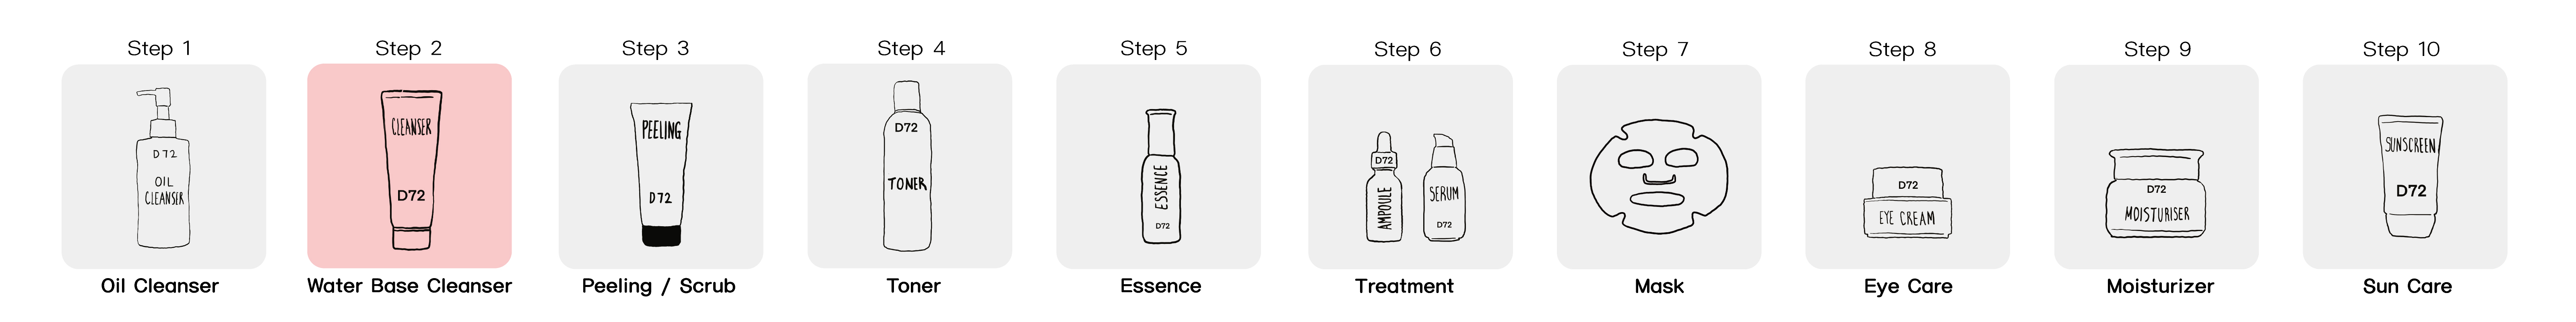 step2-water-base-cleanser.jpg